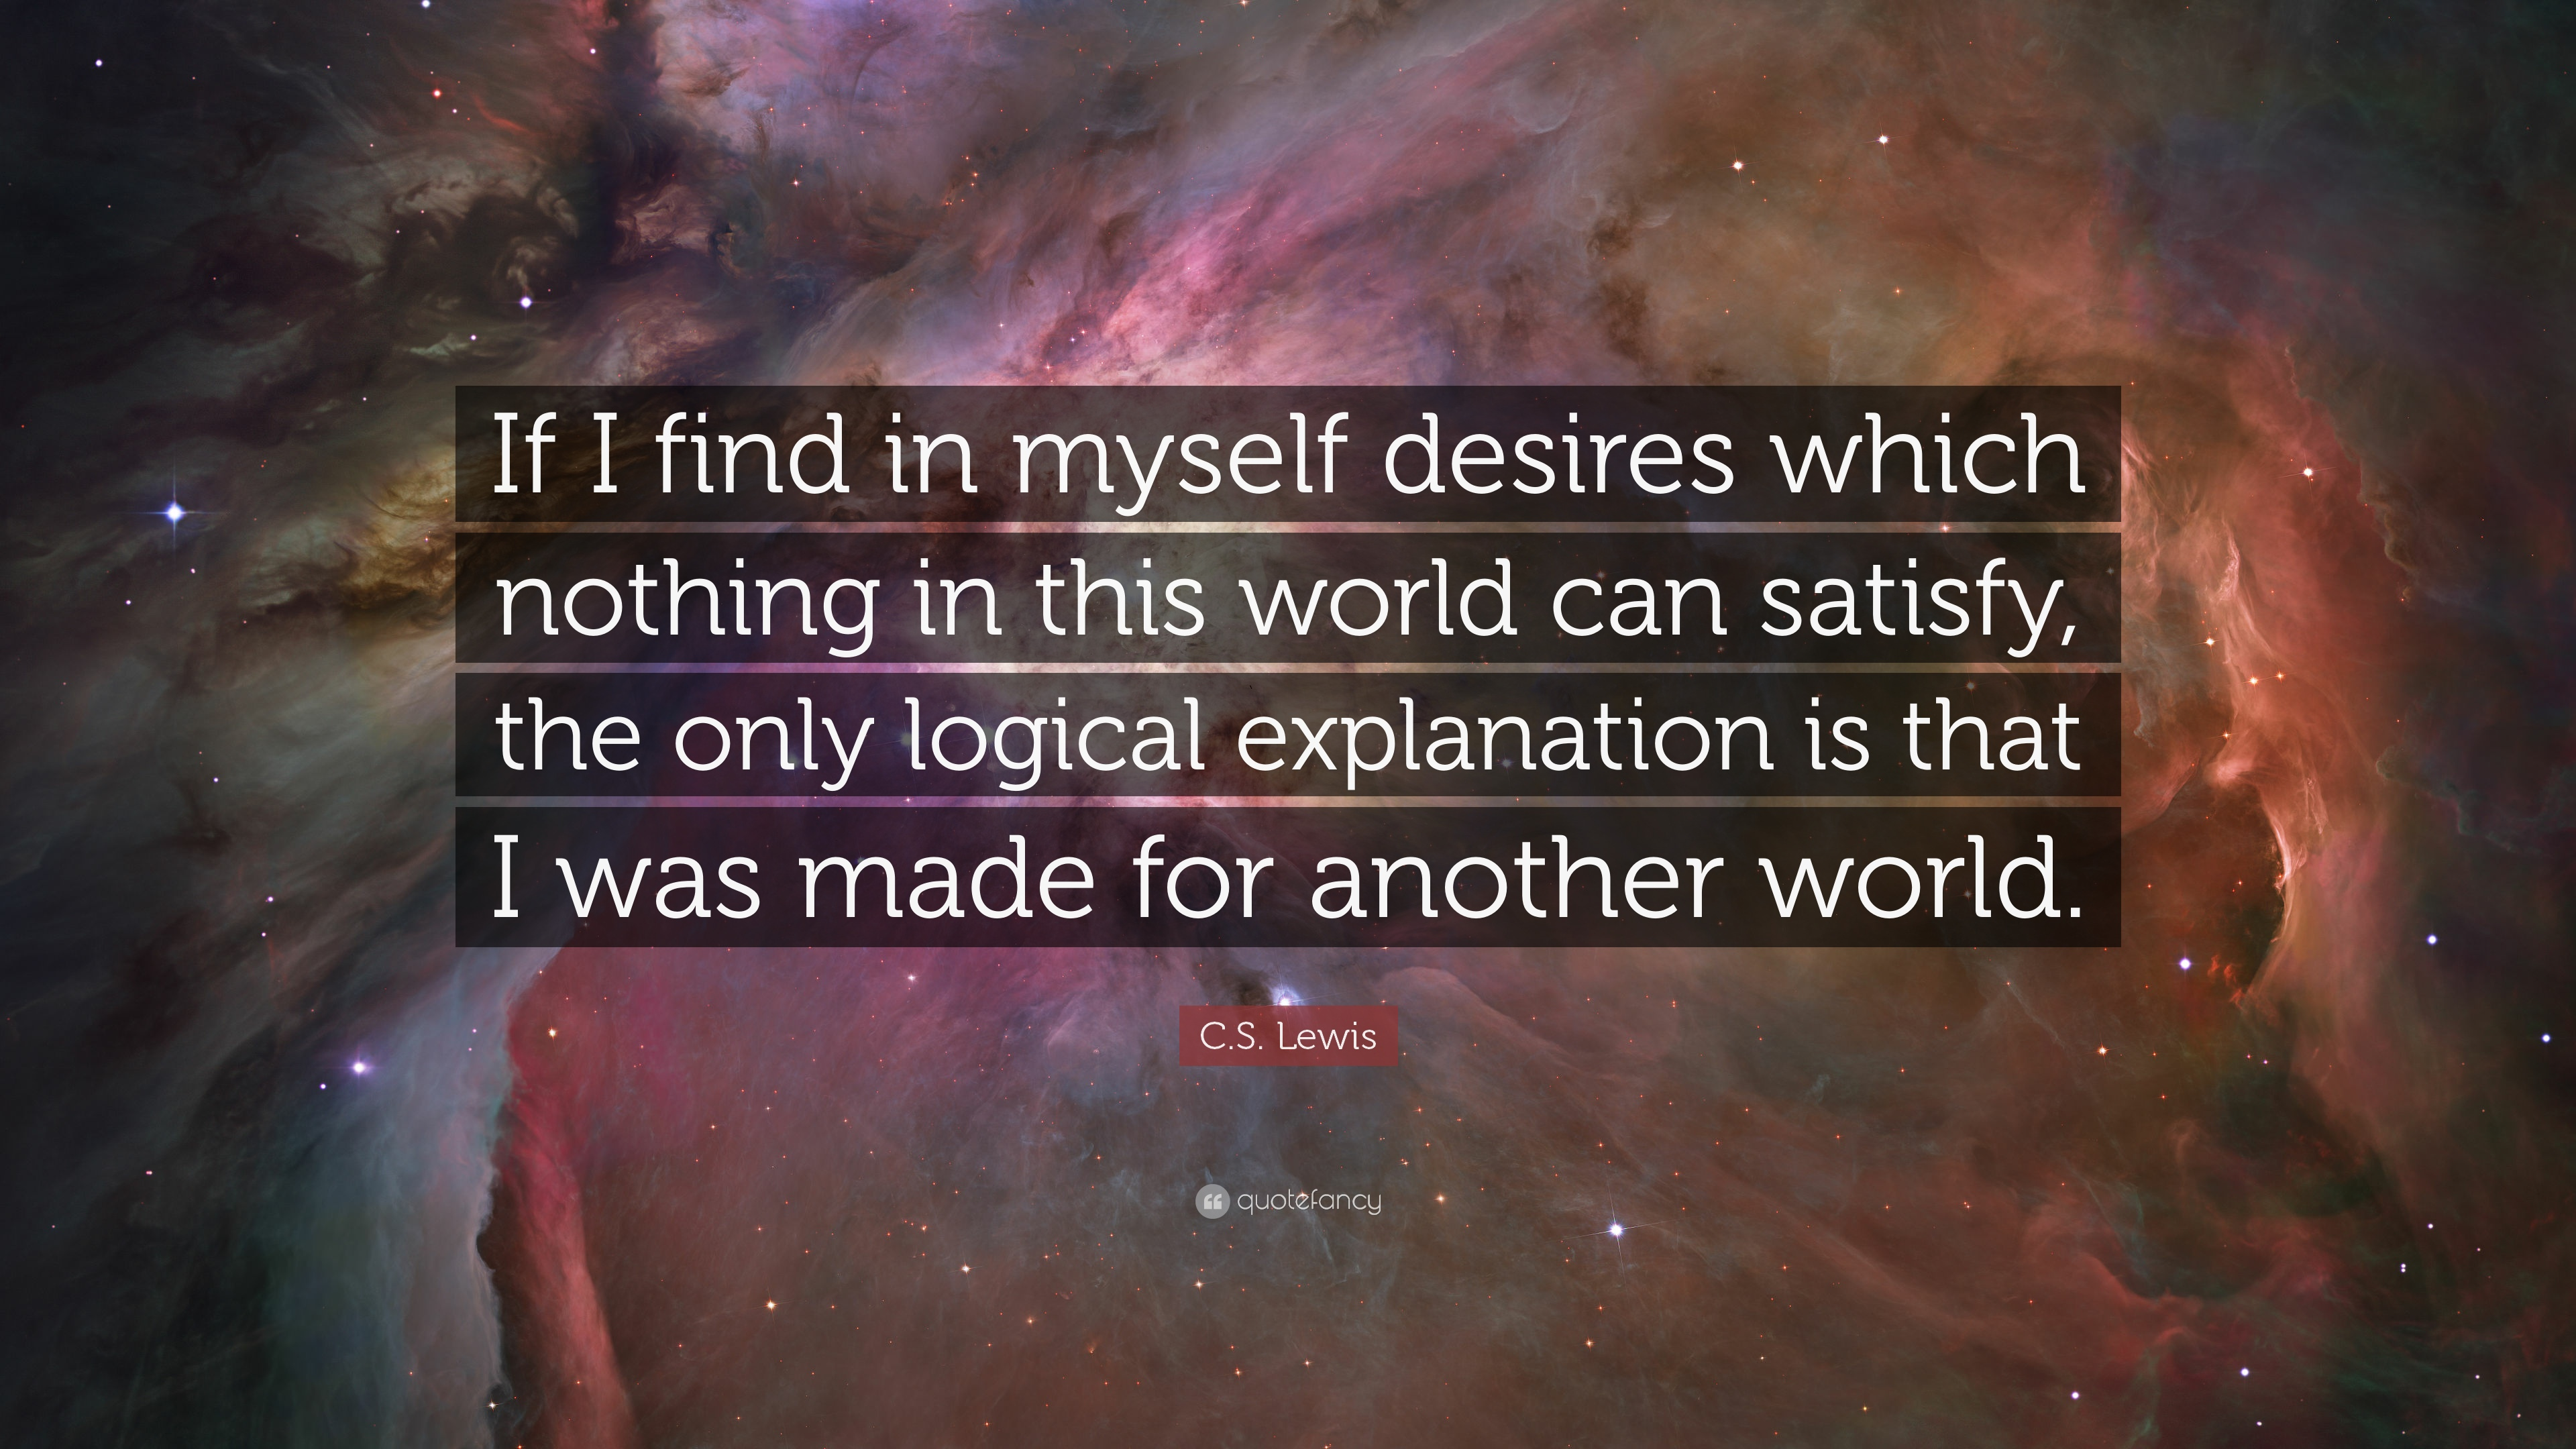 I Was Made Another World Cs Lewis Quotes